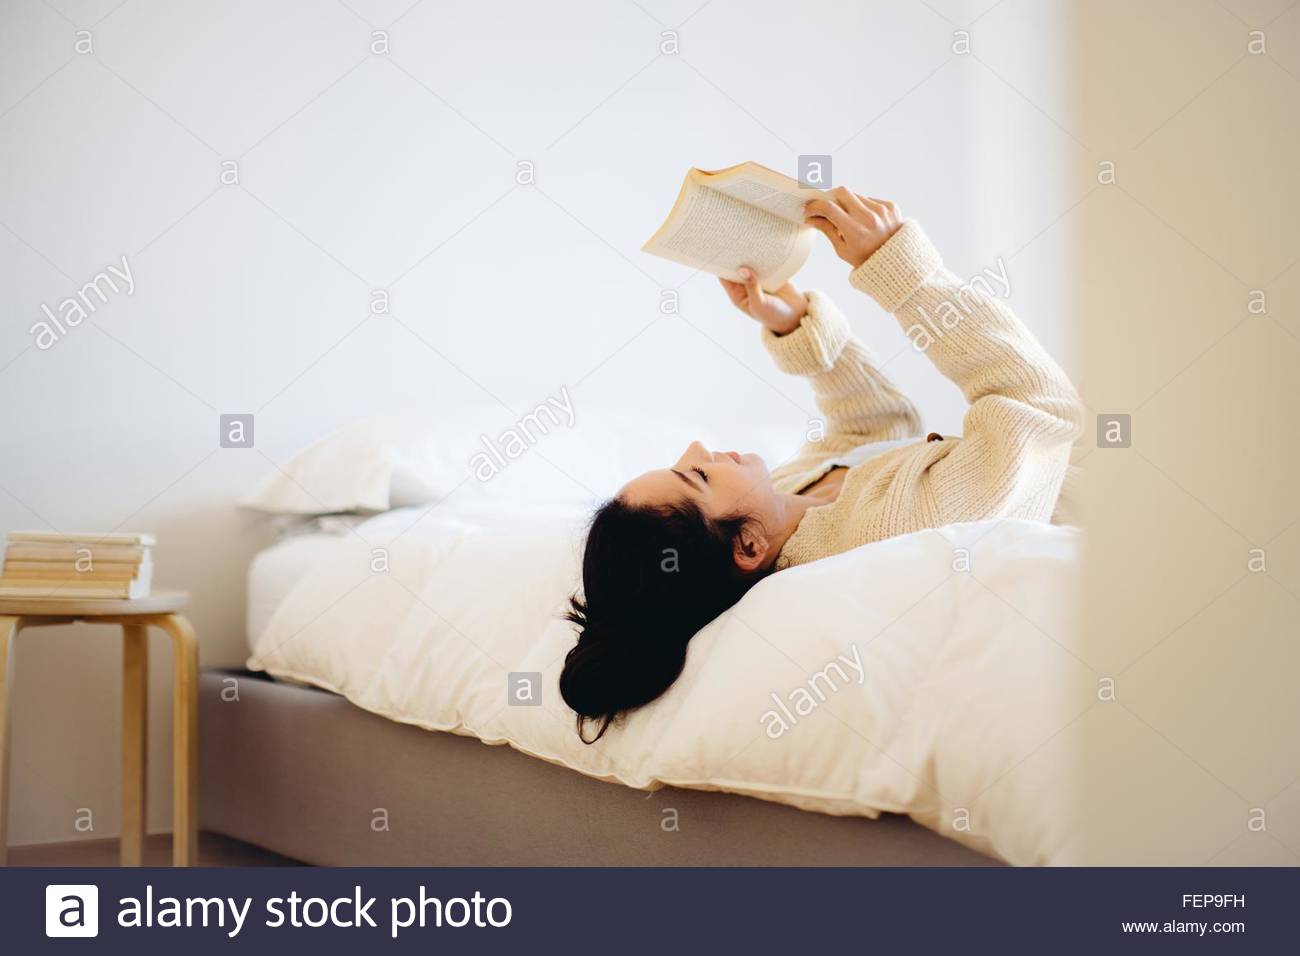 reading book stockfotos reading book bilder alamy. Black Bedroom Furniture Sets. Home Design Ideas